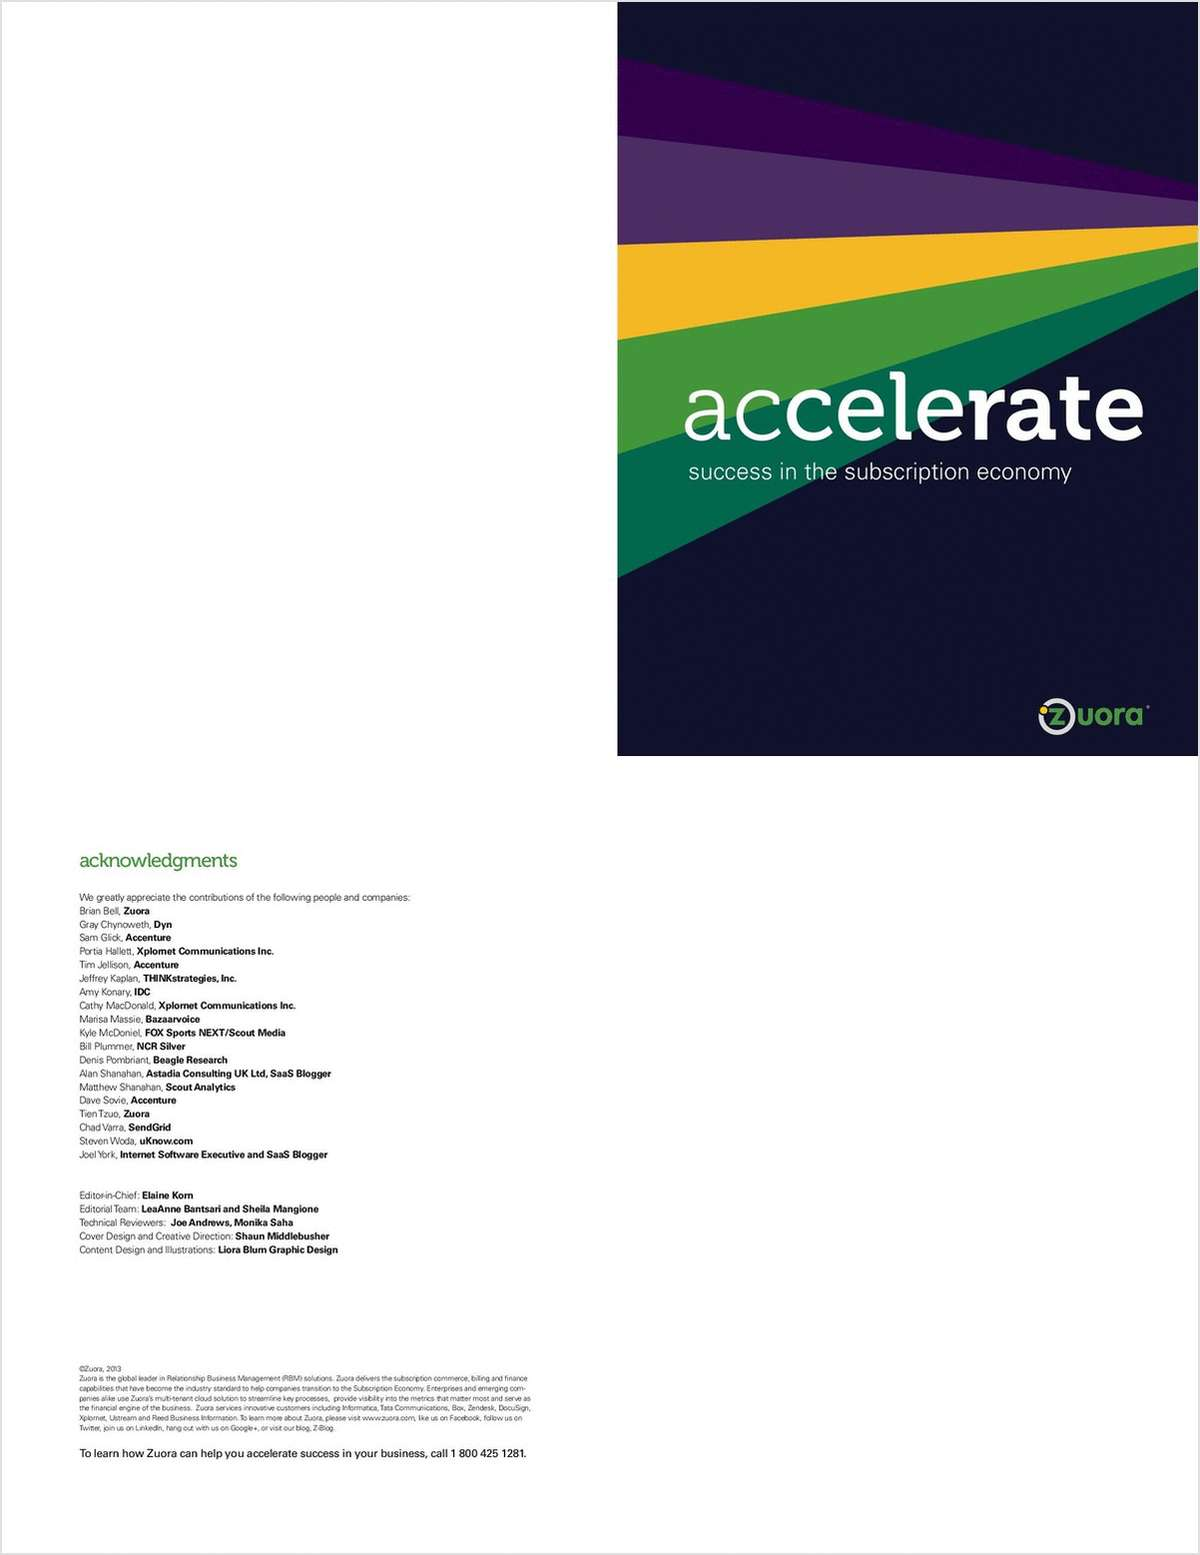 Accelerate Success in the Subscription Economy